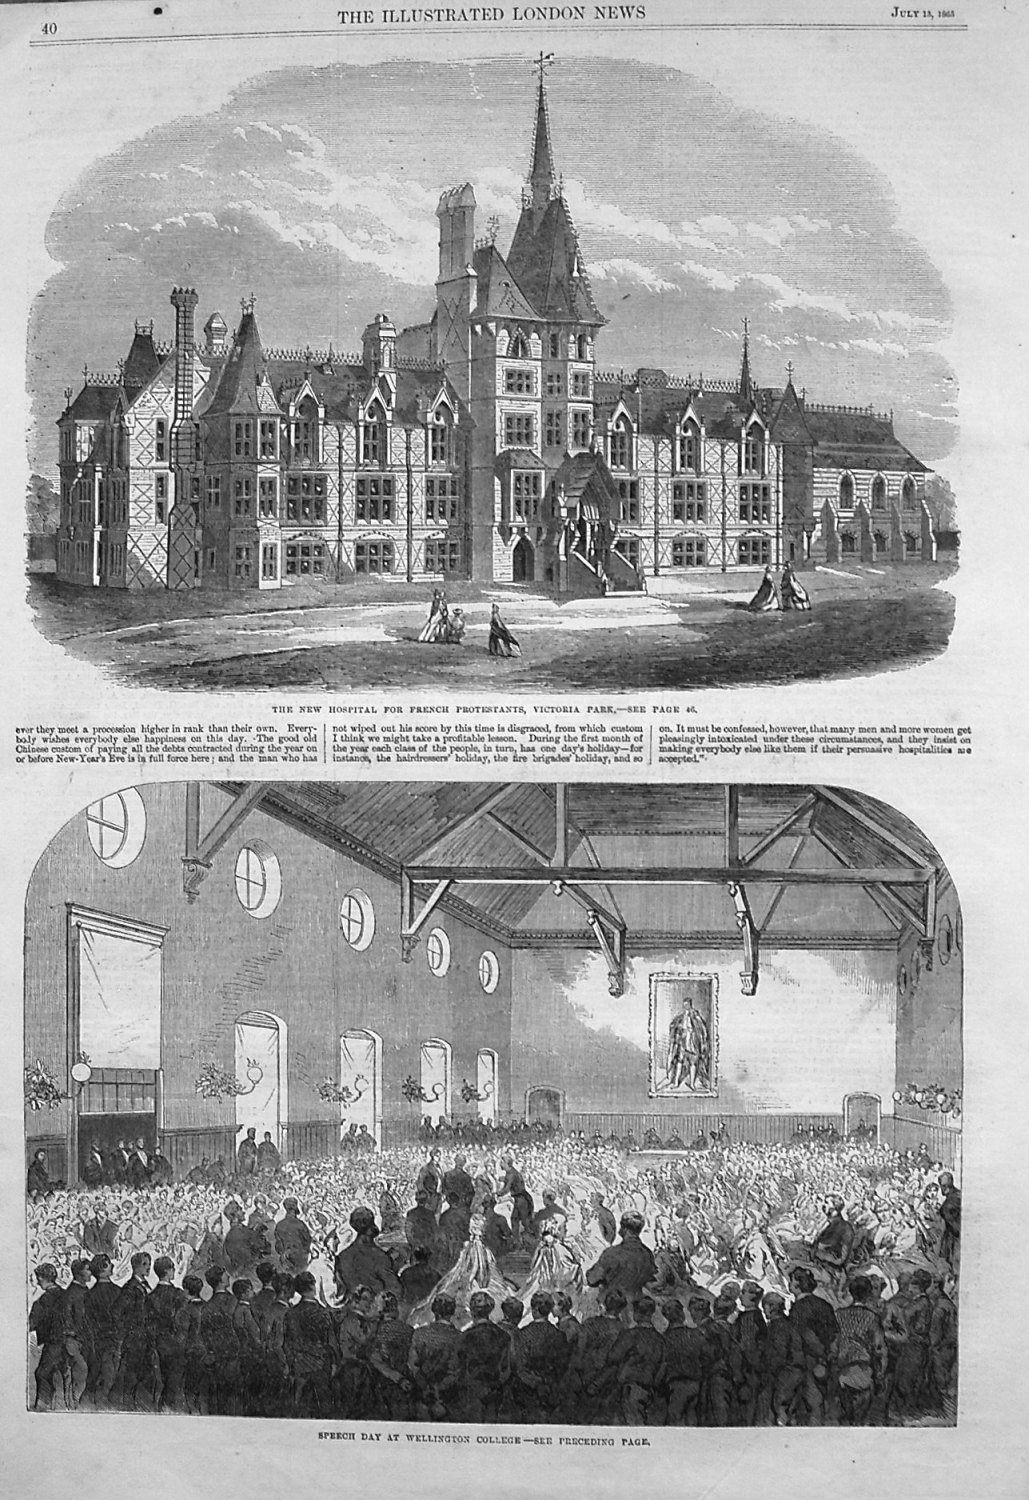 The New Hospital for French Protestants, Victoria Park.